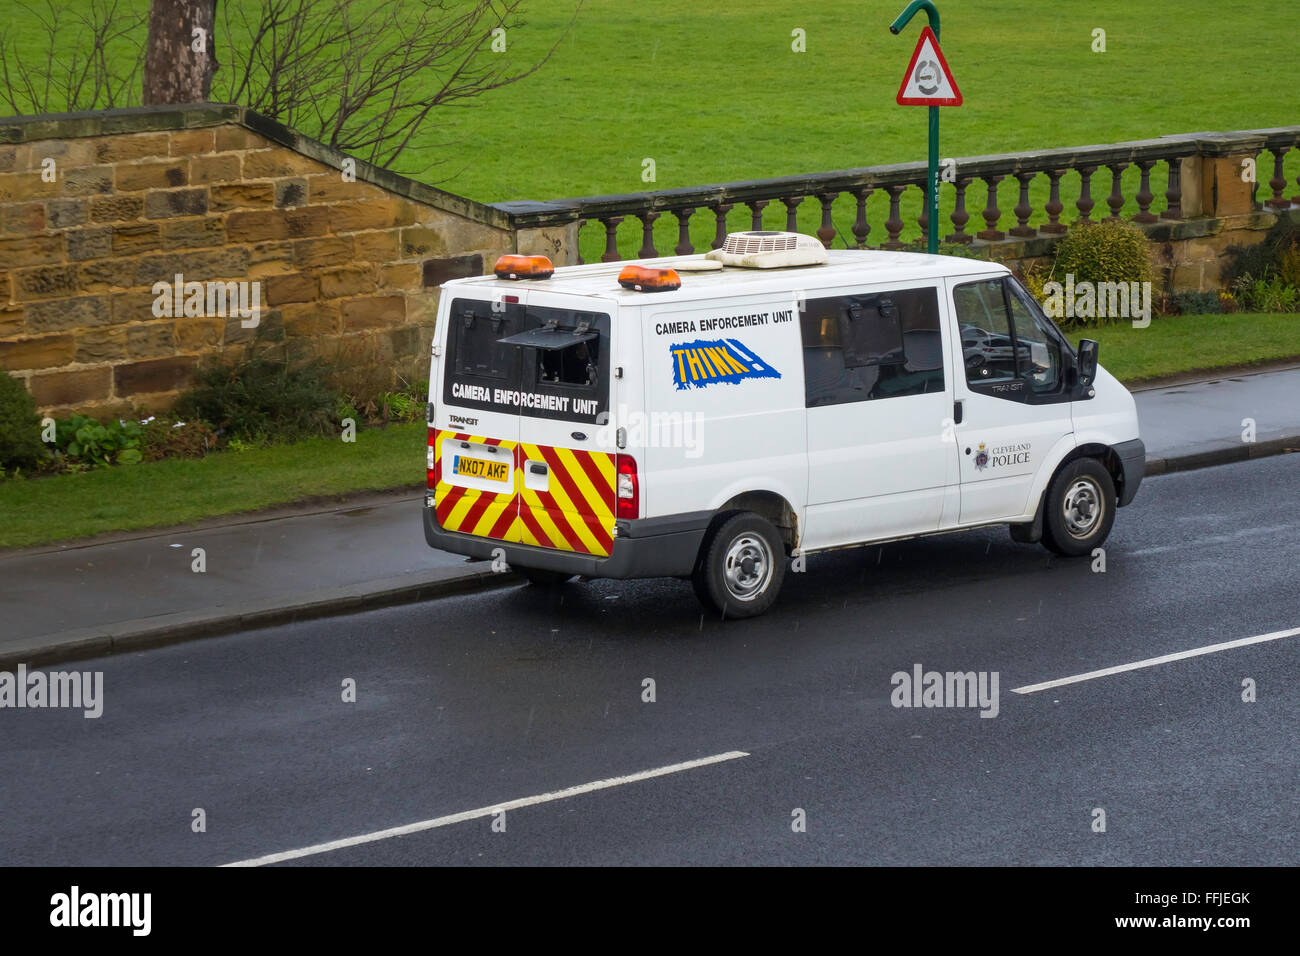 Police van Camera Enforcement Unit covert measuring of motor vehicle speed to check speed limit compliance - Stock Image